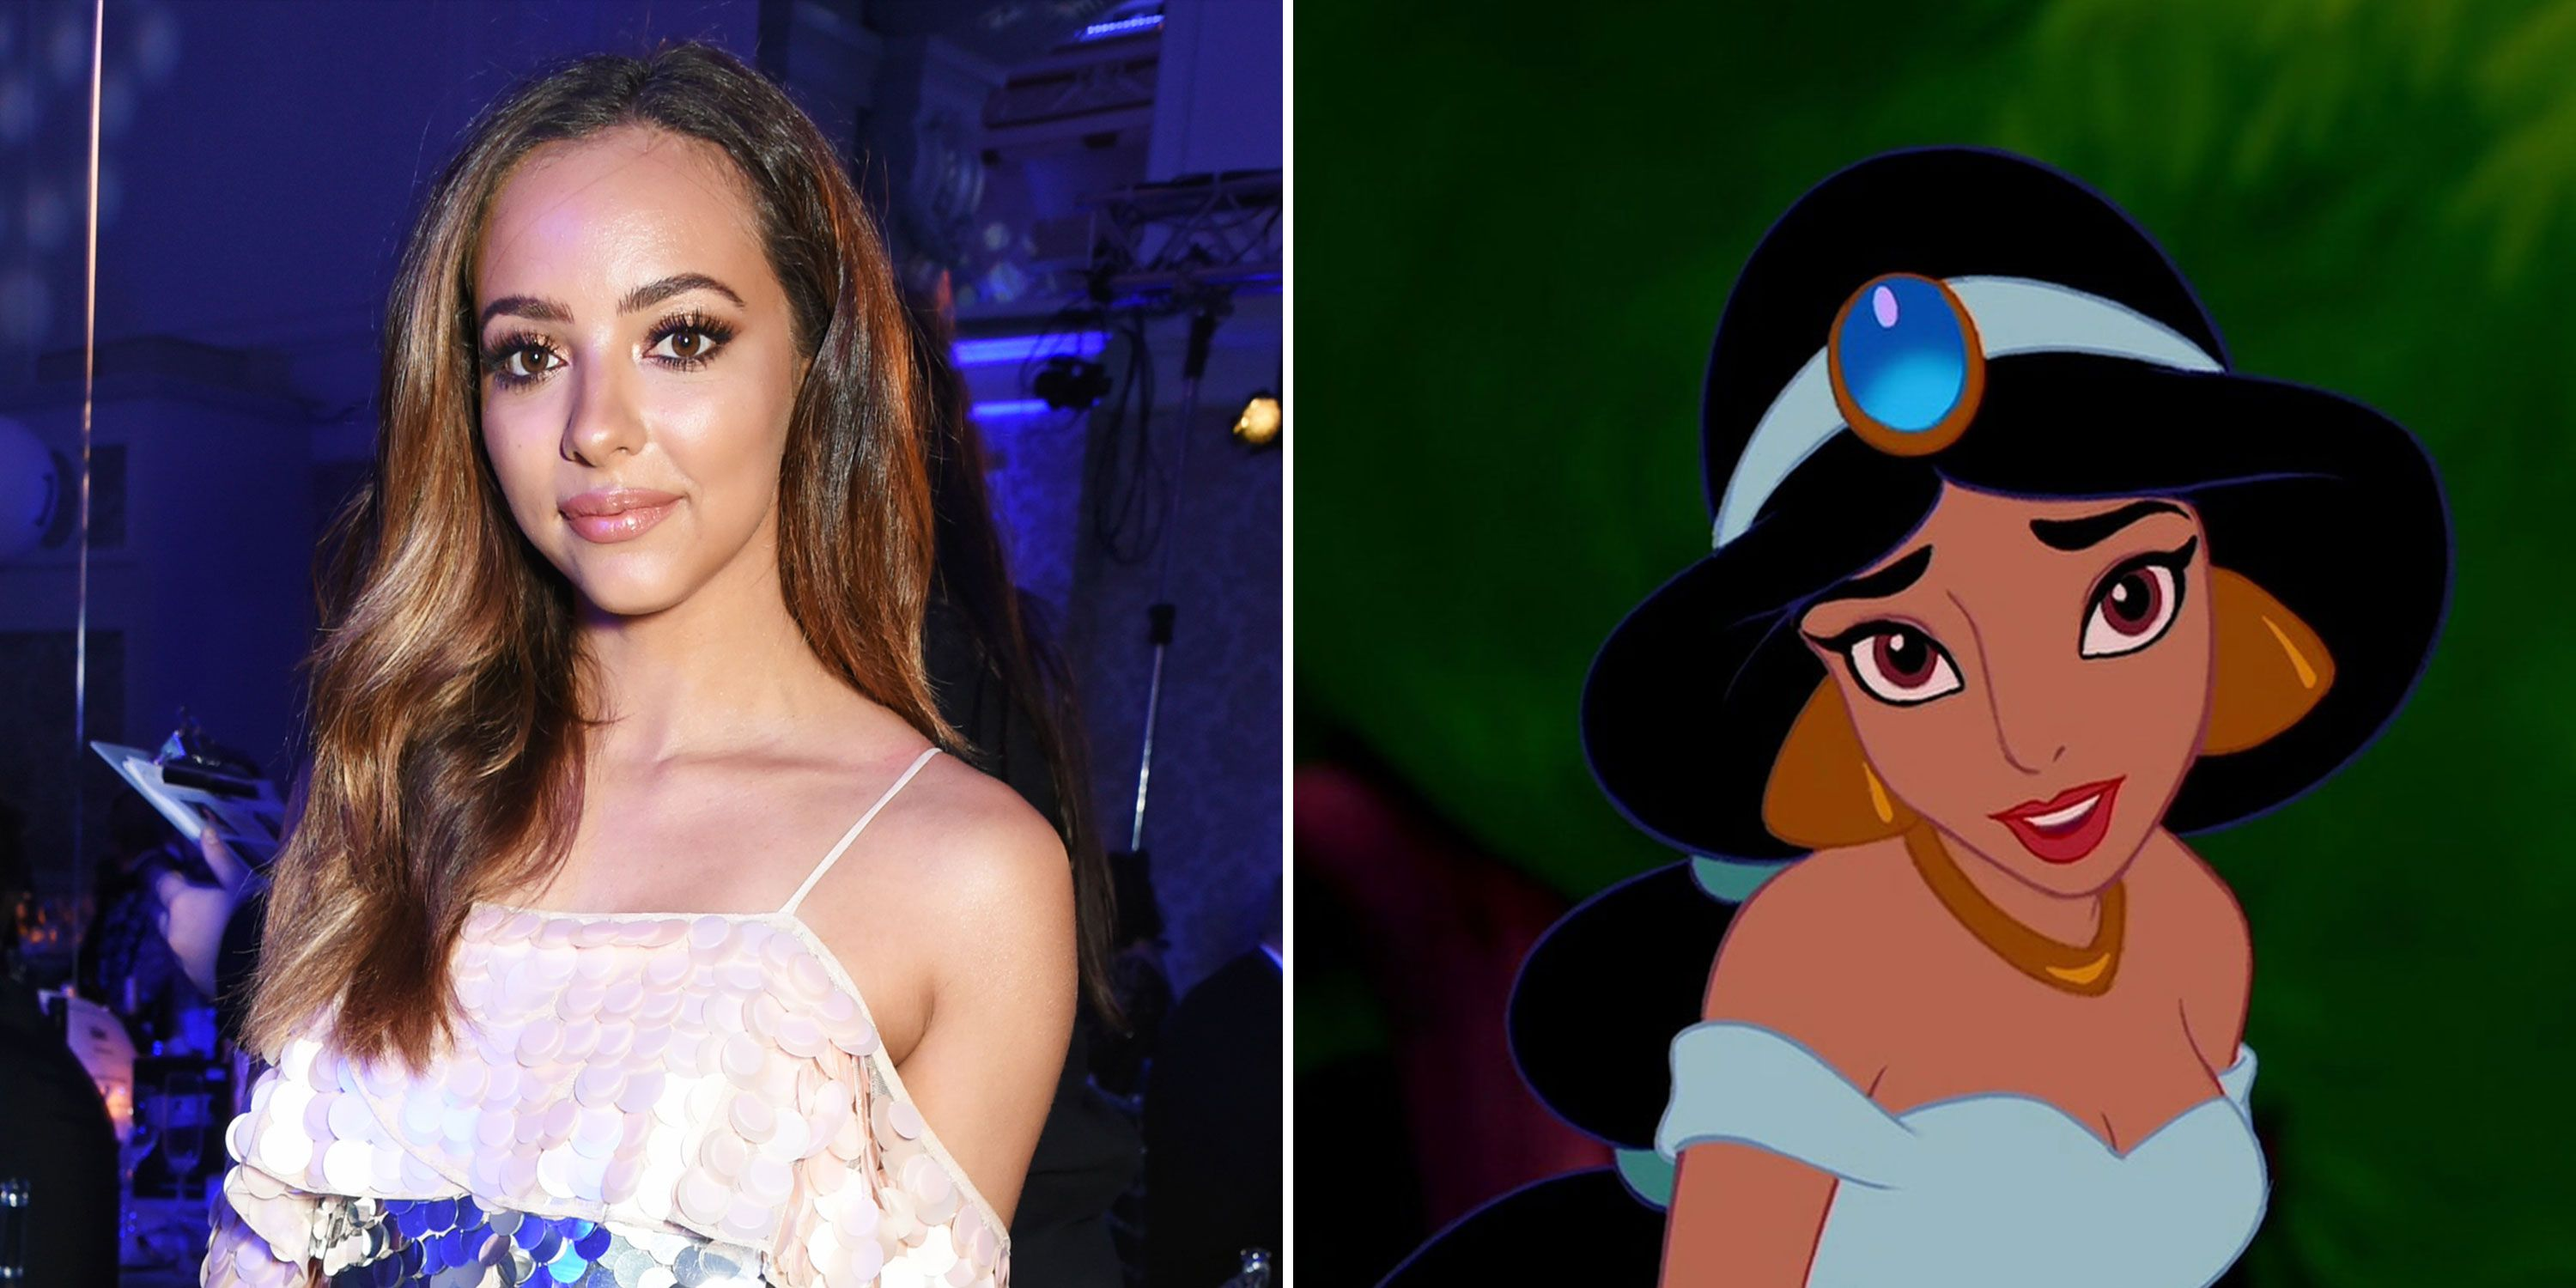 Jade Thirwall - Little Mix's Jade Thirwall could be playing Princess Jasmine in the Aladdin remake